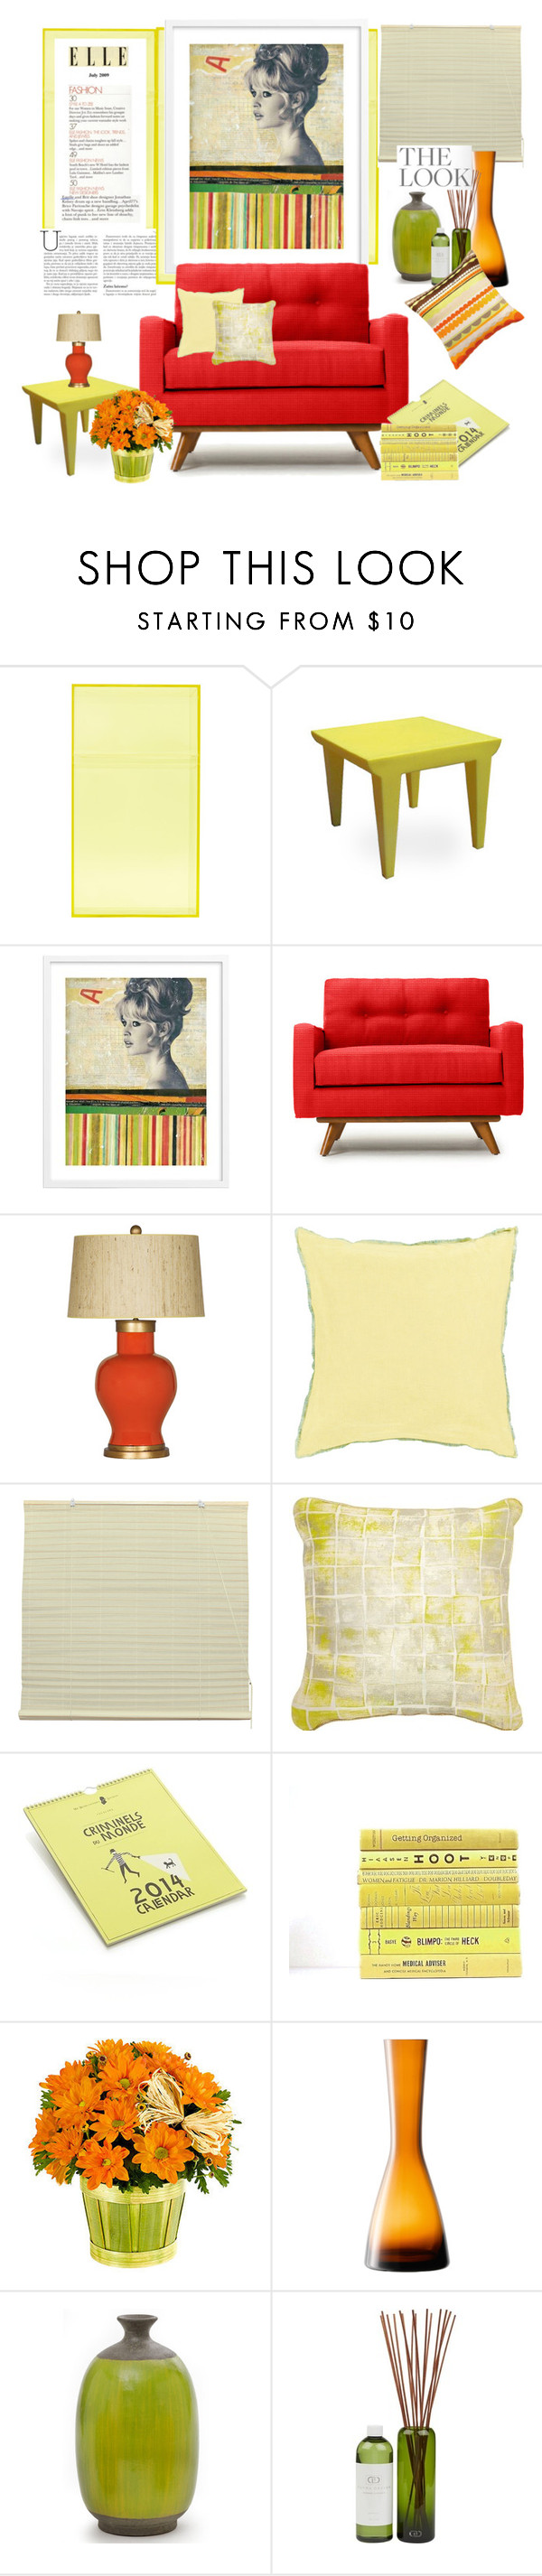 """The look.."" by gul07 ❤ liked on Polyvore featuring interior, interiors, interior design, home, home decor, interior decorating, Nomess, Kartell, Universal Lighting and Decor and Thrive"